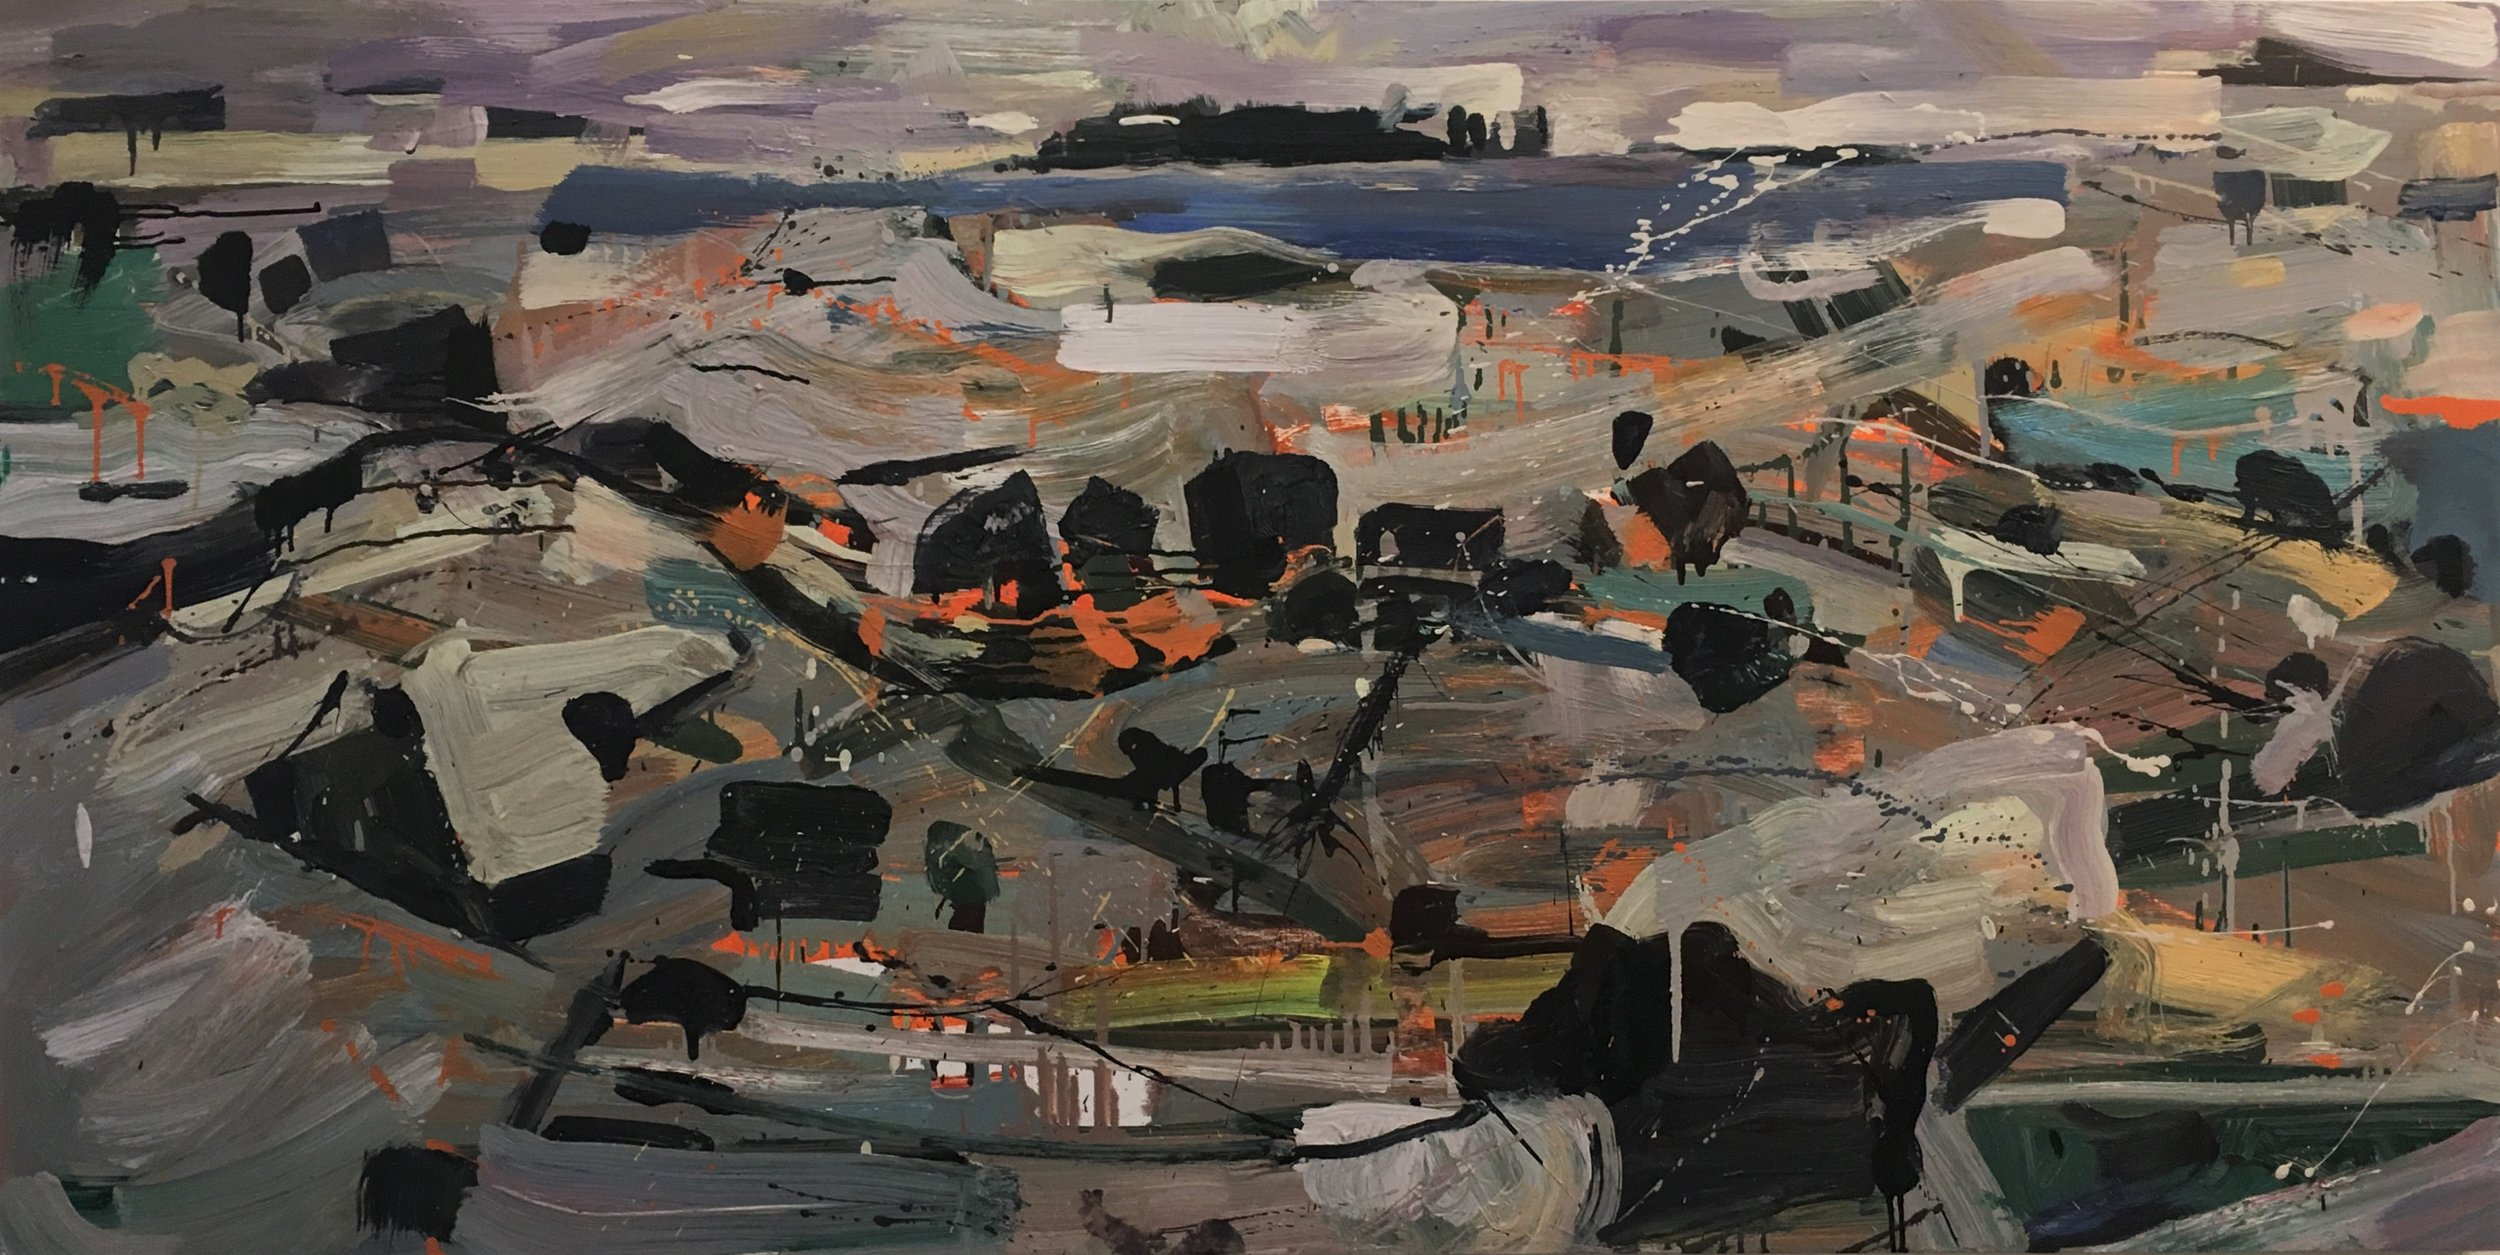 Grog Island , 2012-13 oil on panel, 30 x 60 inches